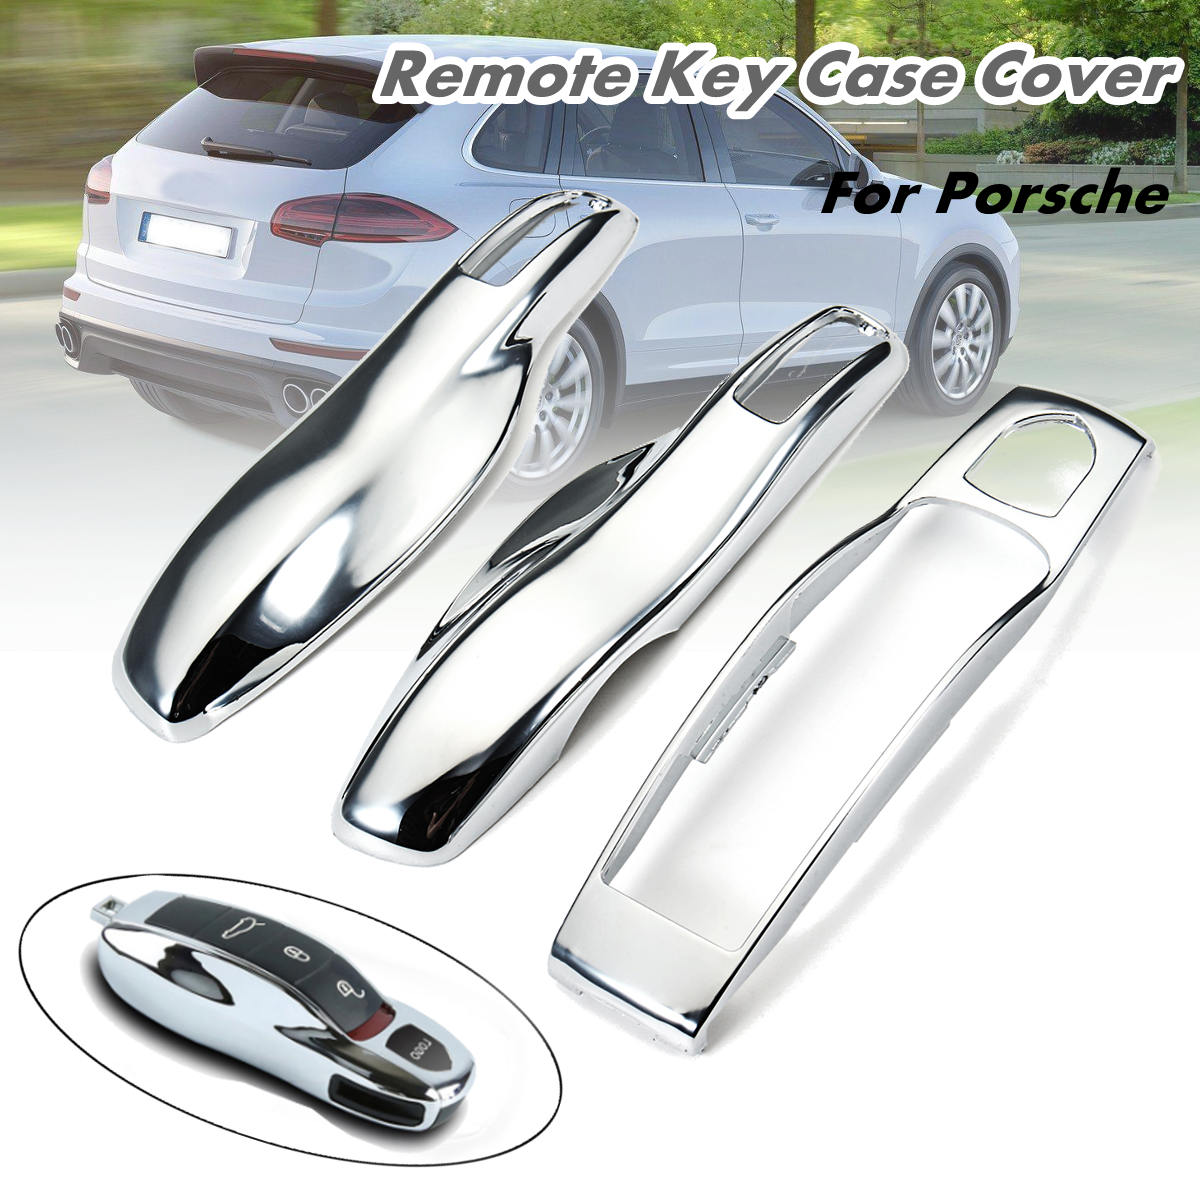 3Pcs set Car Remote Fob Key Case Cover Mirror Chrome Key Shell Replace for Porsche Boxster Cayman 911 for Panamera Cayenne Macan